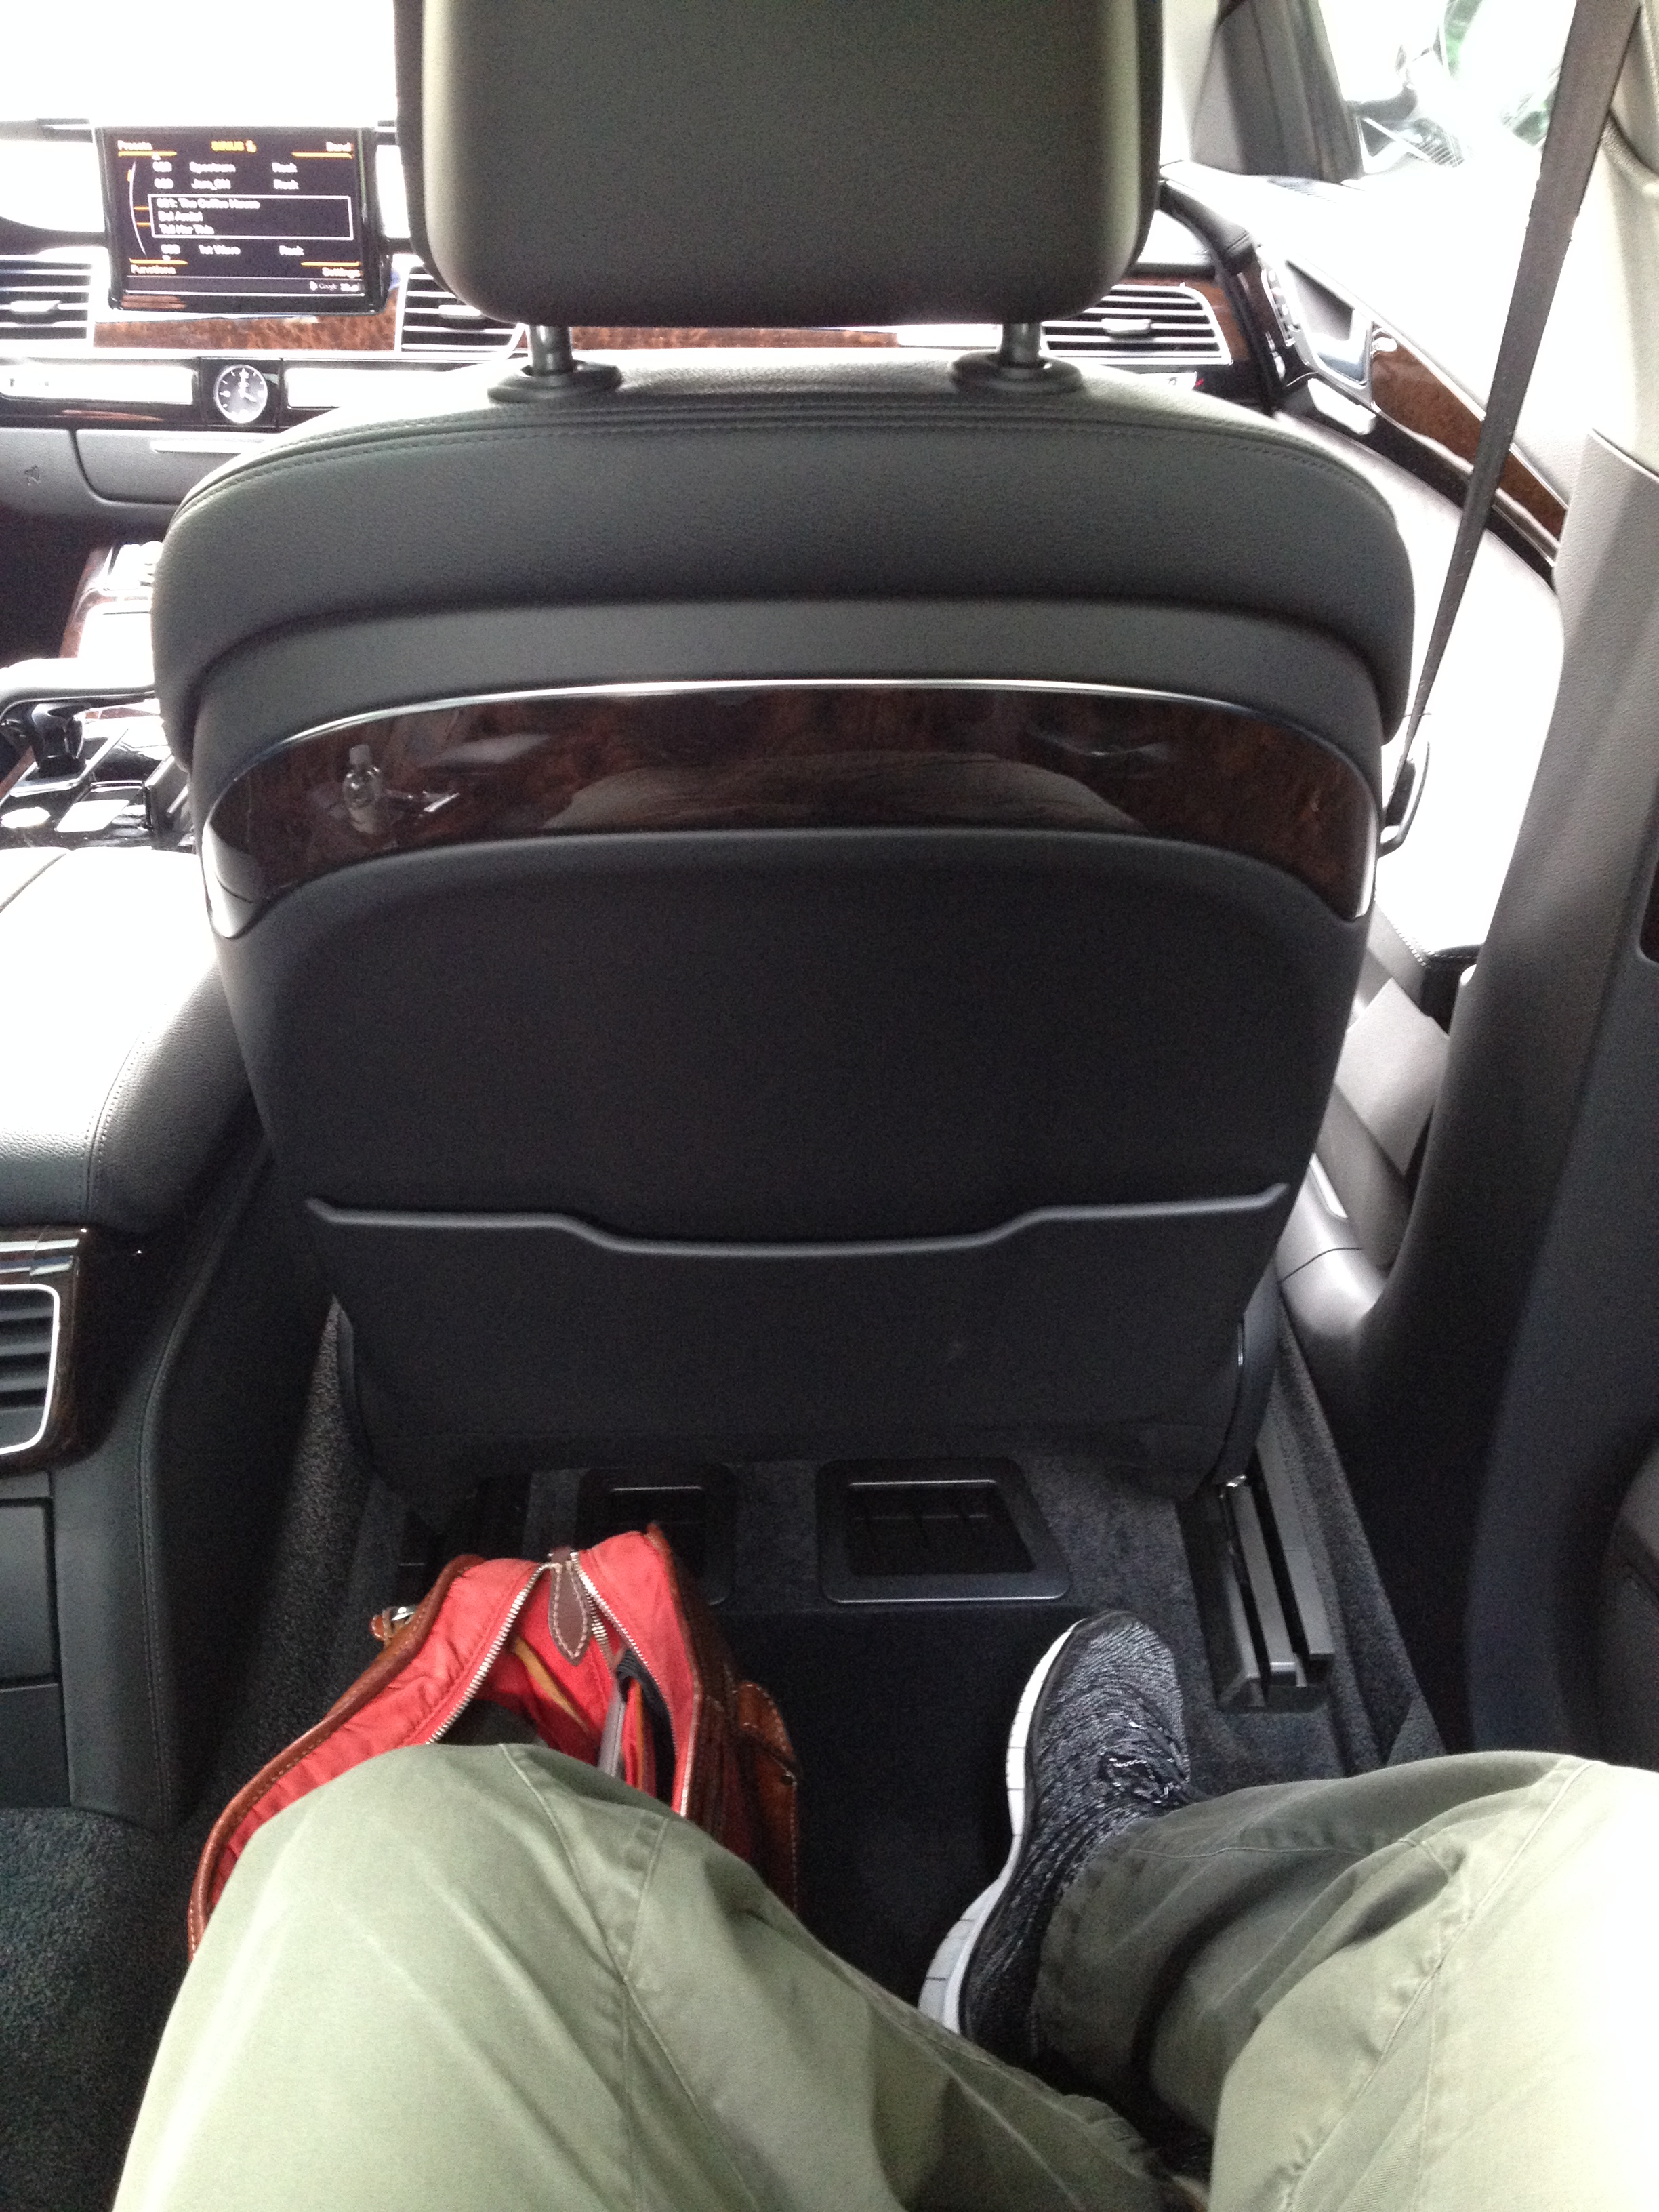 There really is an awful lot of legroom in the back of an A8L.